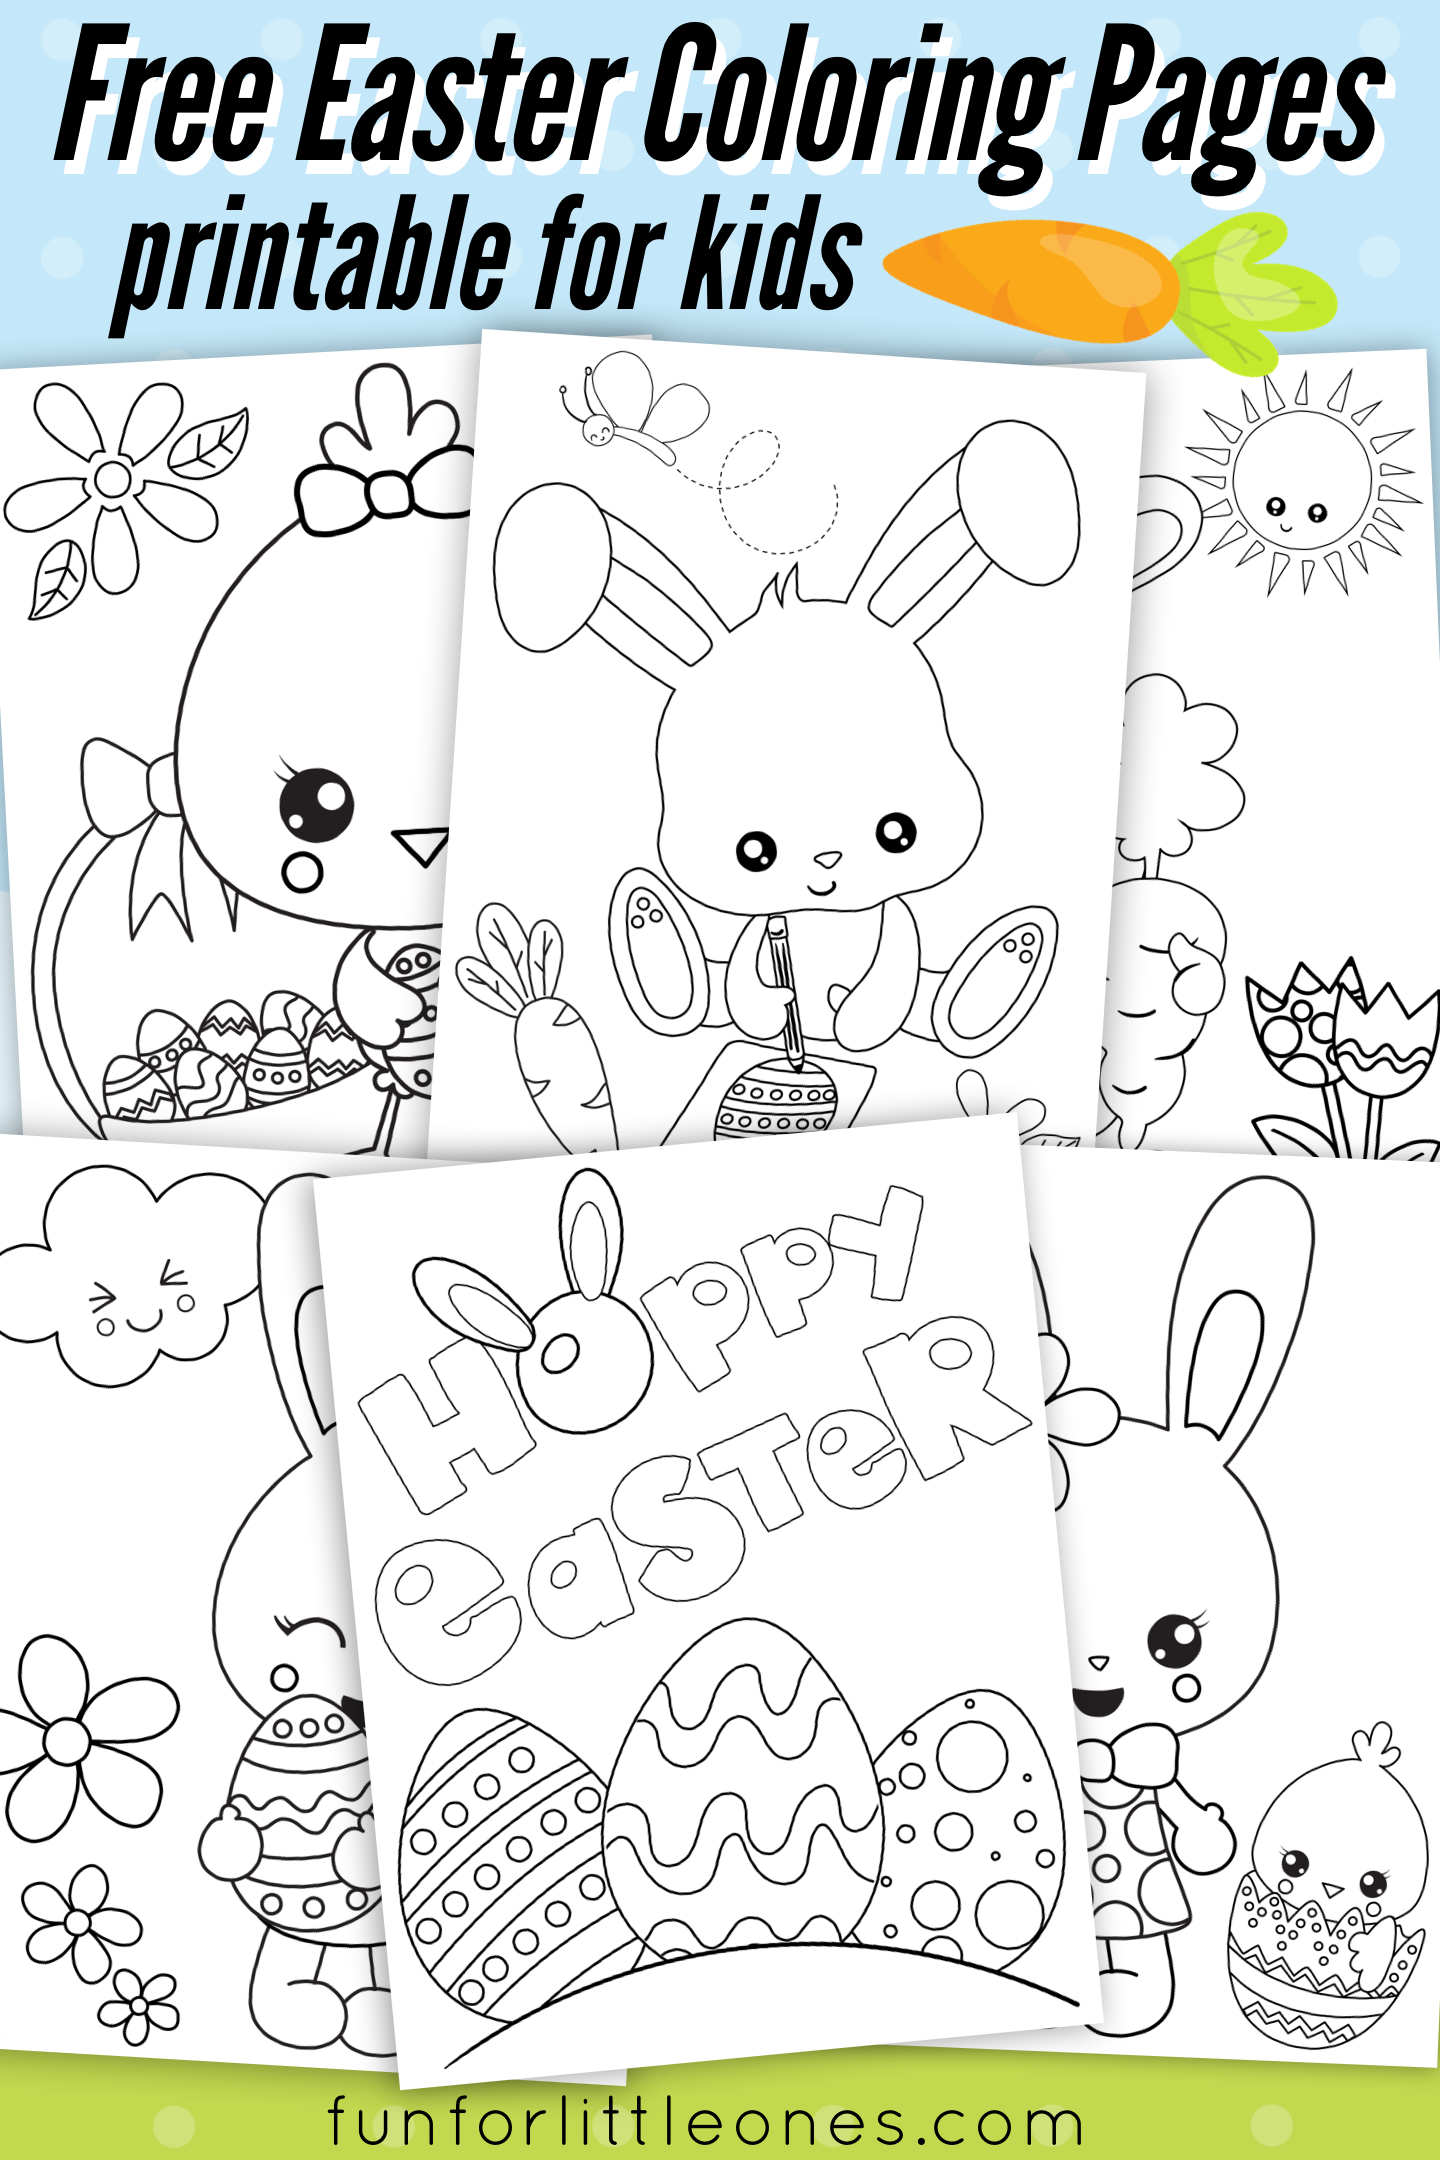 Easter Coloring Pages For Kids Free Printable Fun For Little Ones Easter Printables Free Free Easter Coloring Pages Easter Coloring Pages Printable